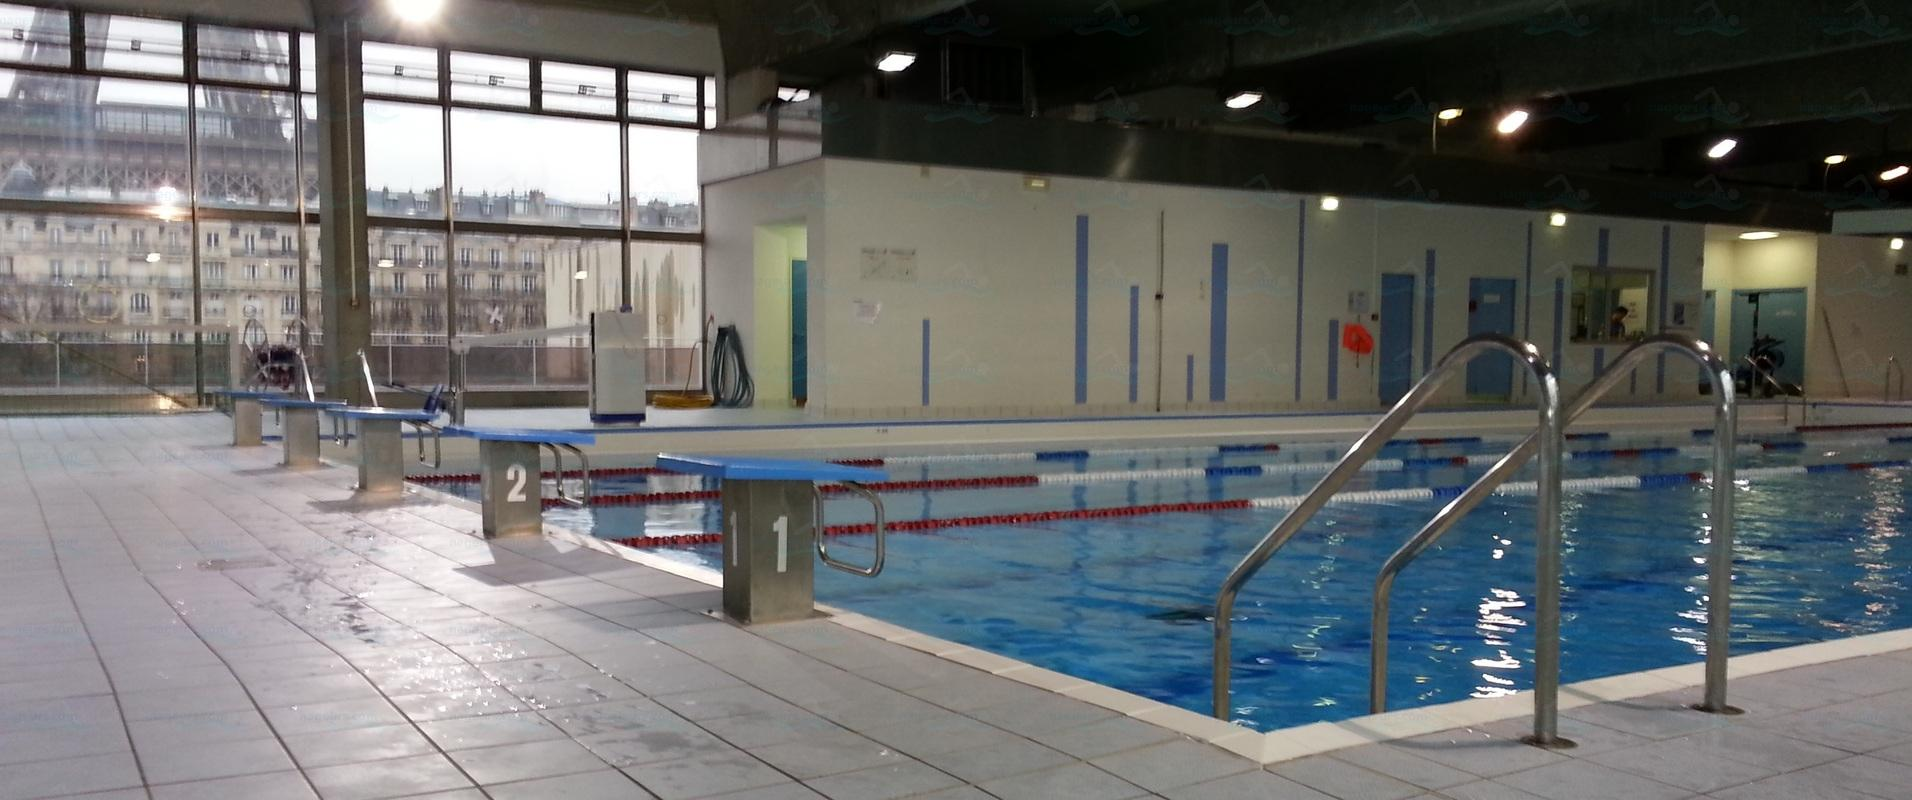 Le guide des 65 piscines de paris for Piscine emile anthoine